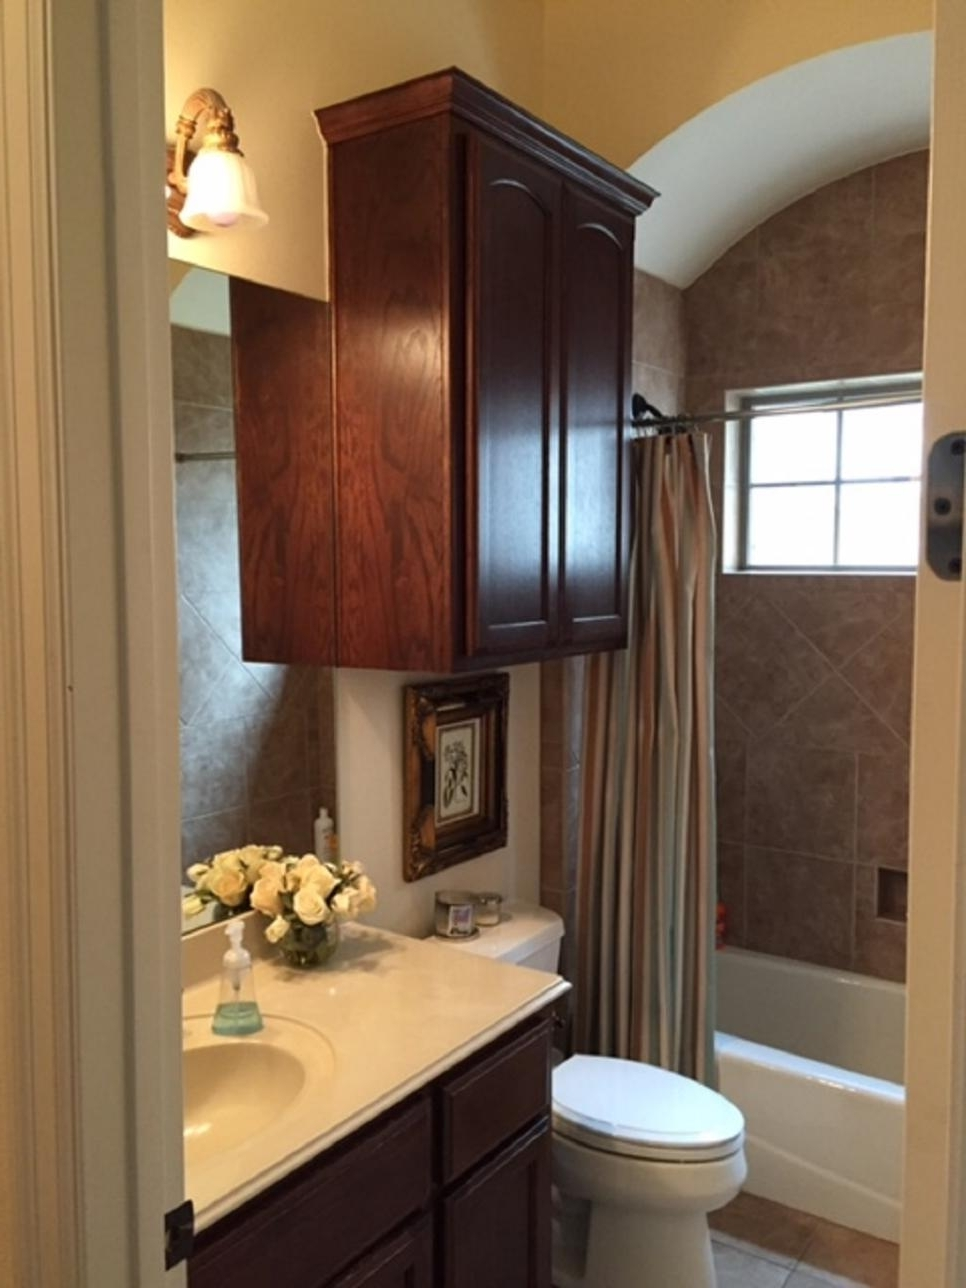 Before And After Bathroom Remodels On A Budget | Hgtv Within Bathroom Remodel (View 7 of 33)